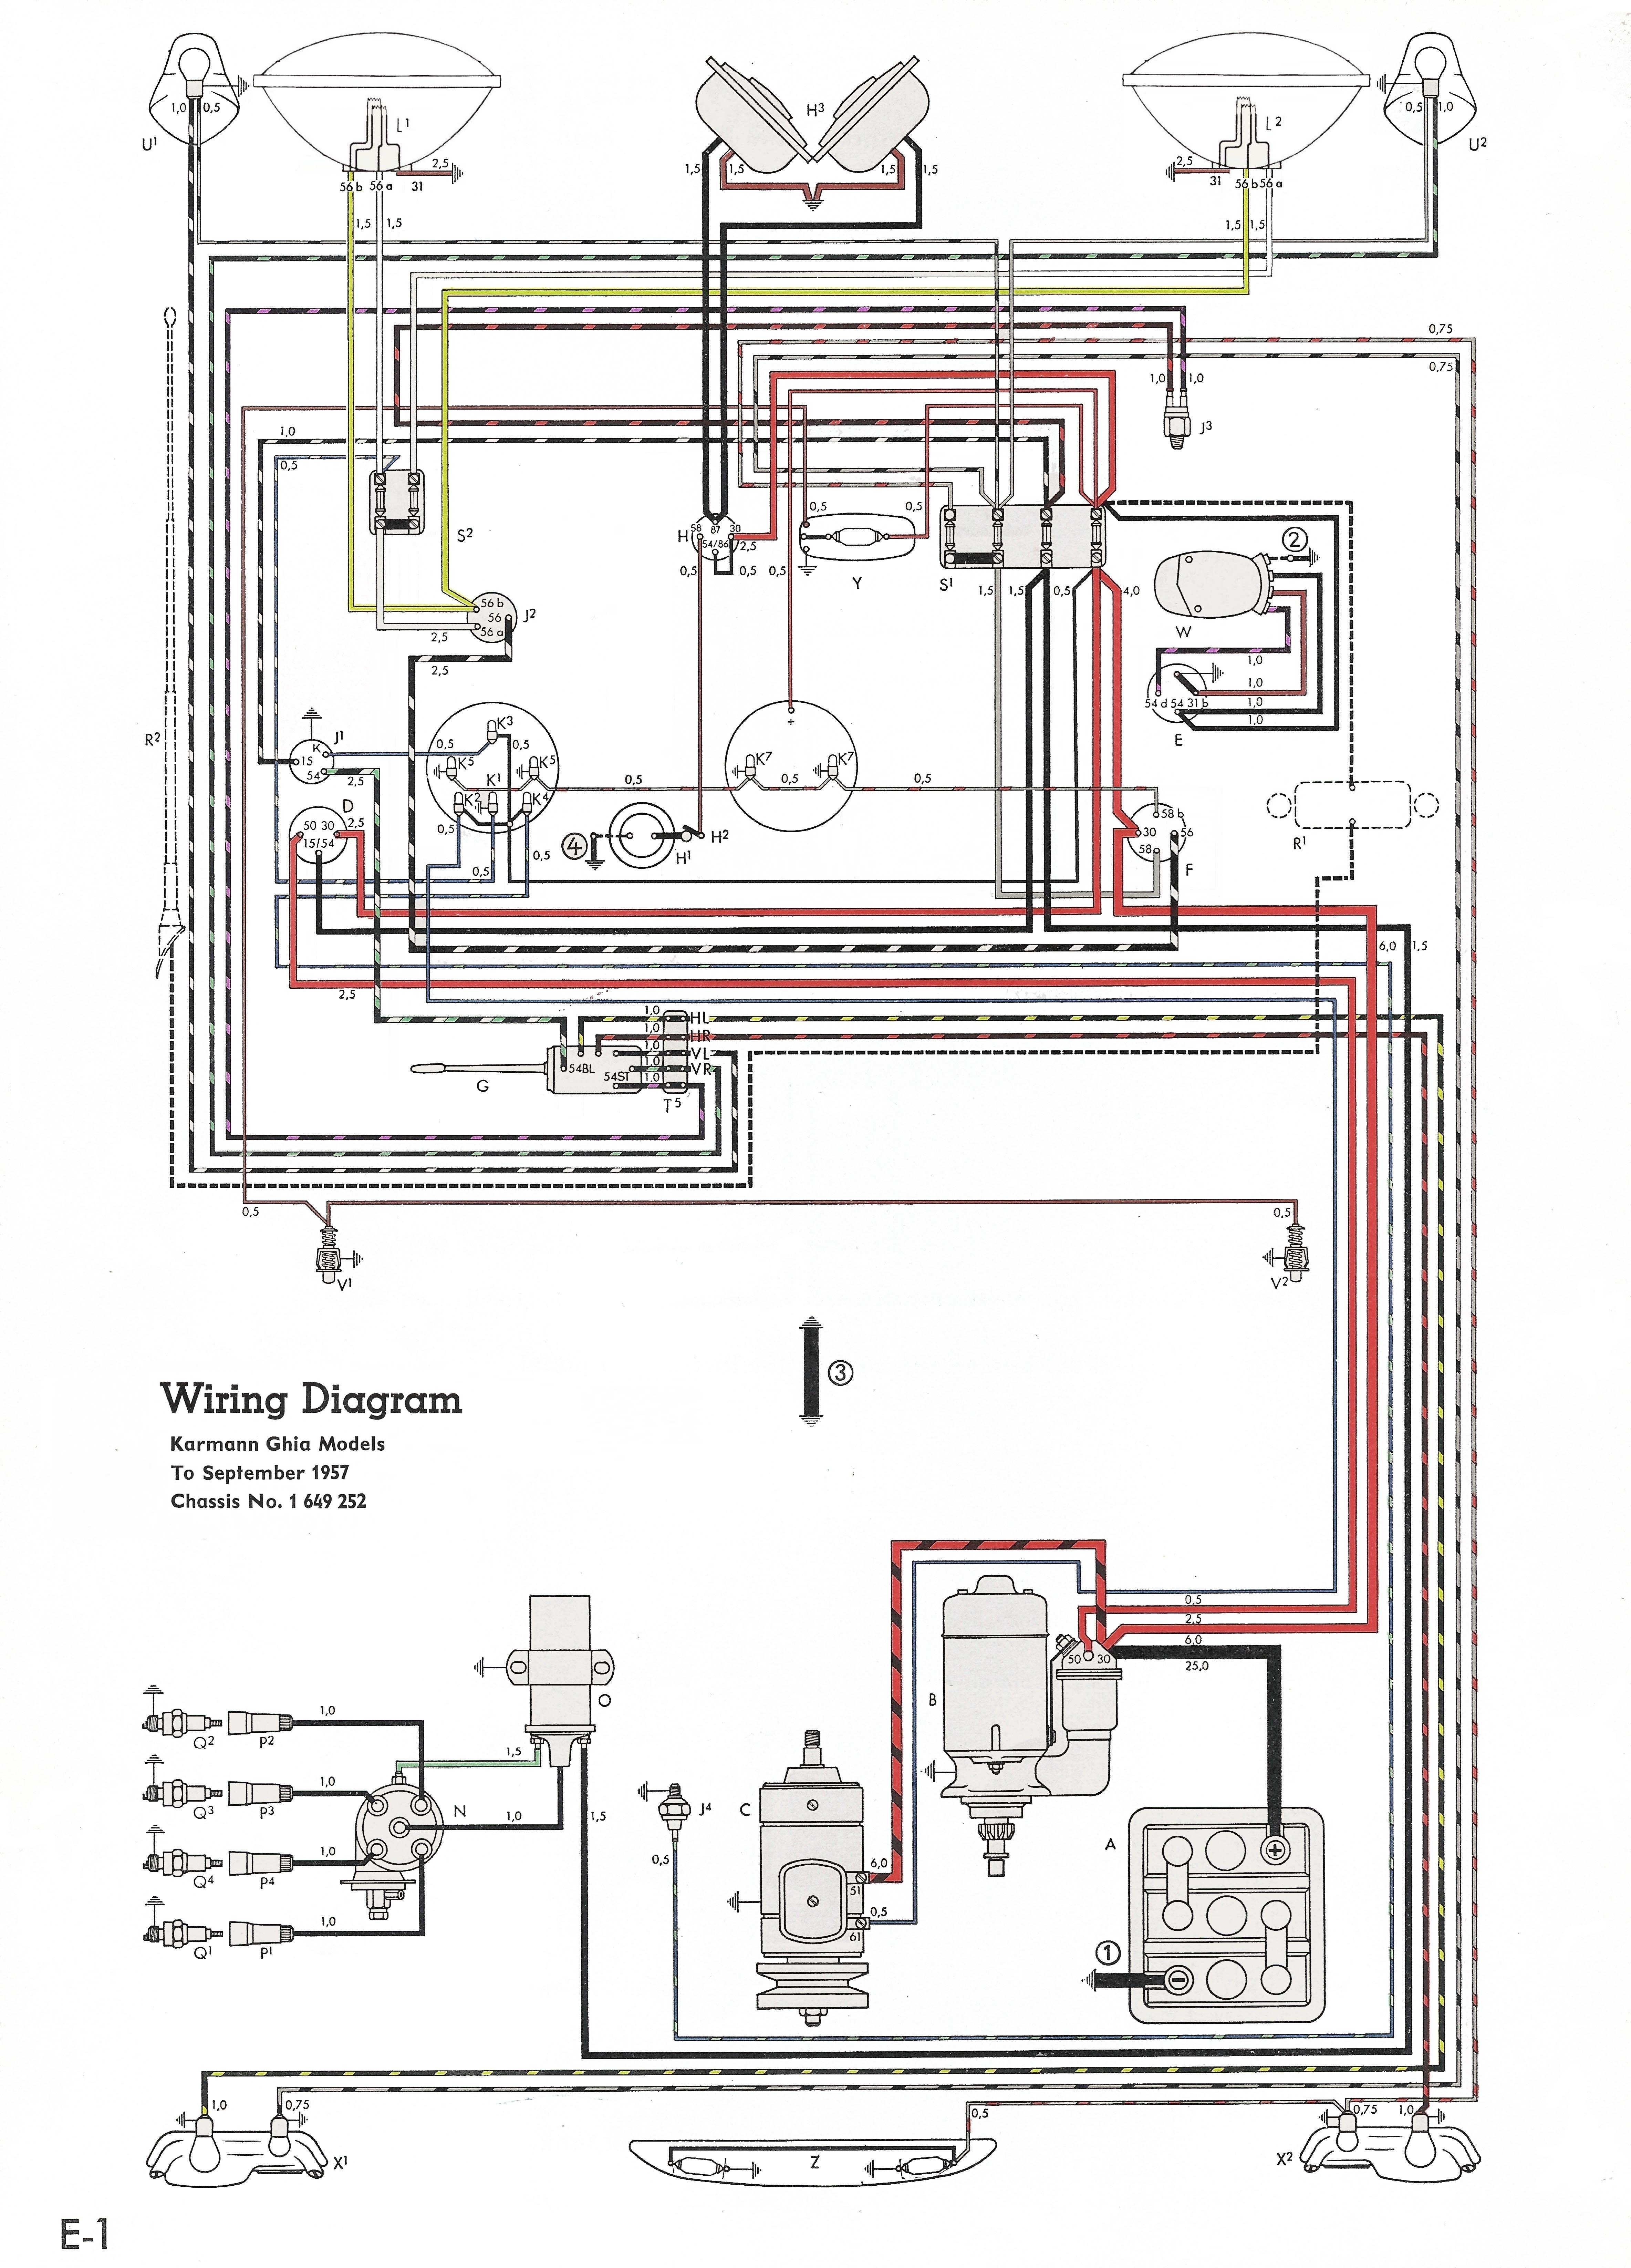 vw polo wiring diagram cat5 poe pdf 26 images